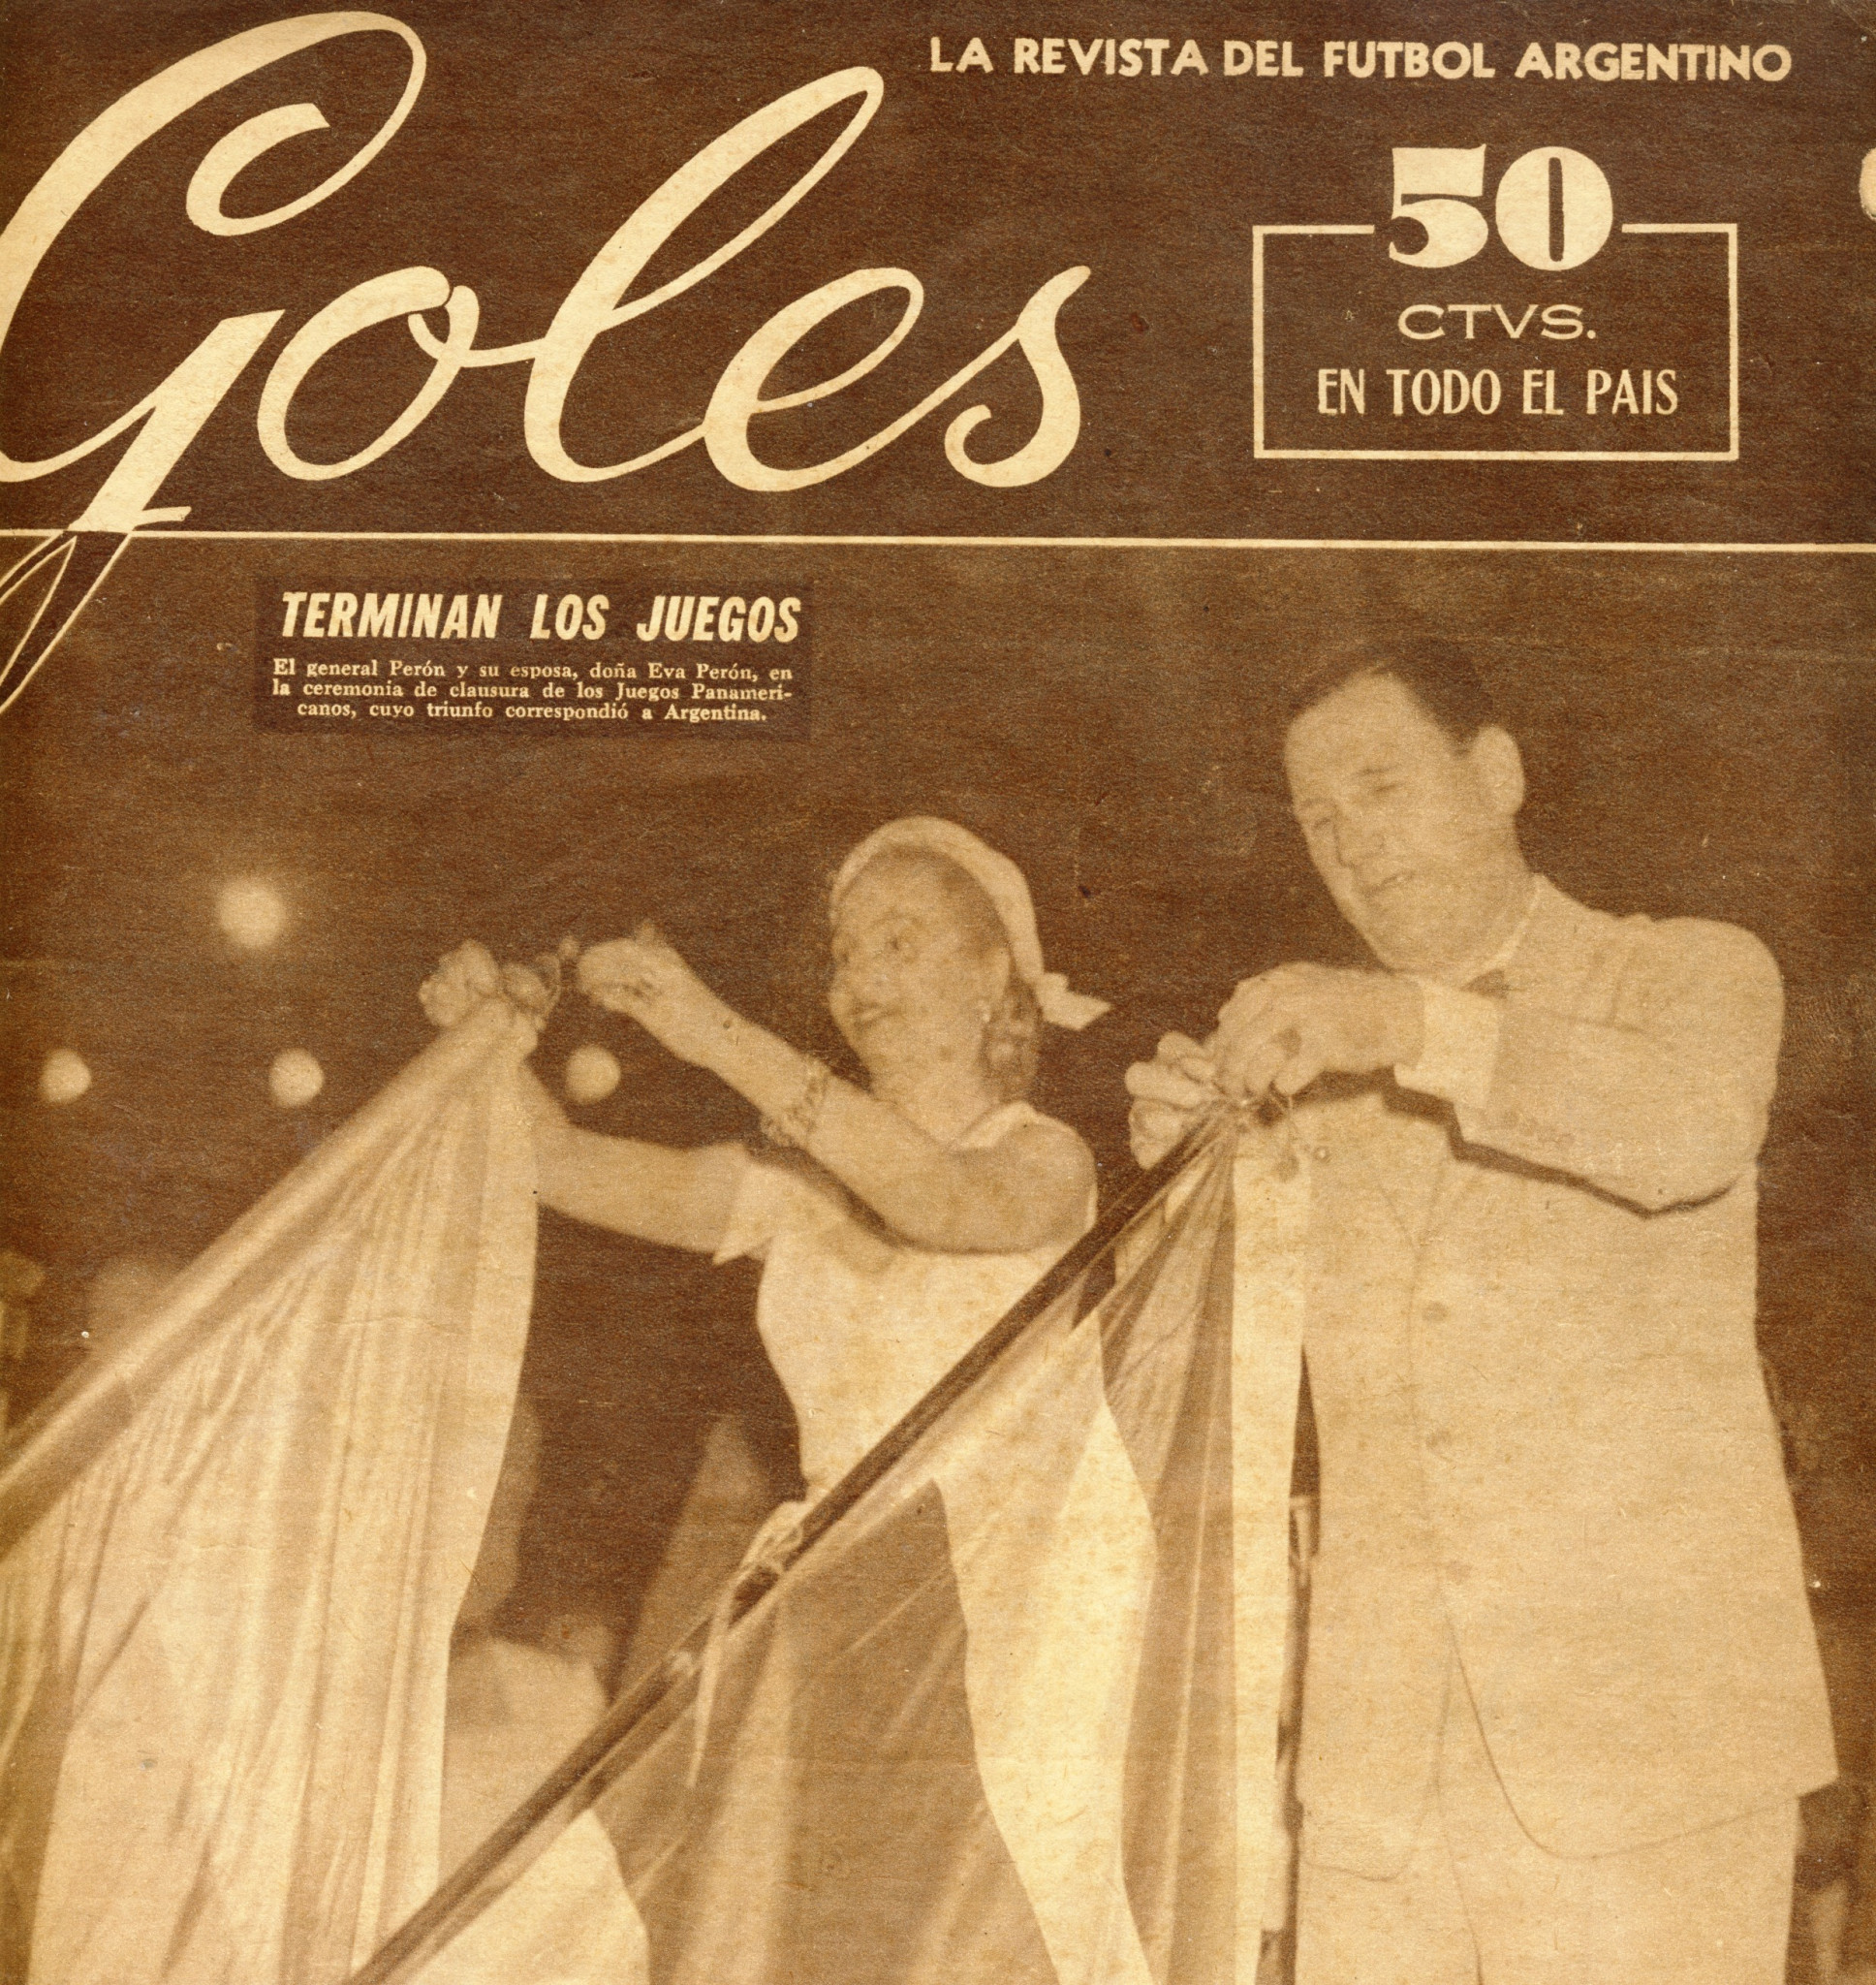 A magazine shows the Peróns at the end of the 1951 Pan American Games ©Philip Barker